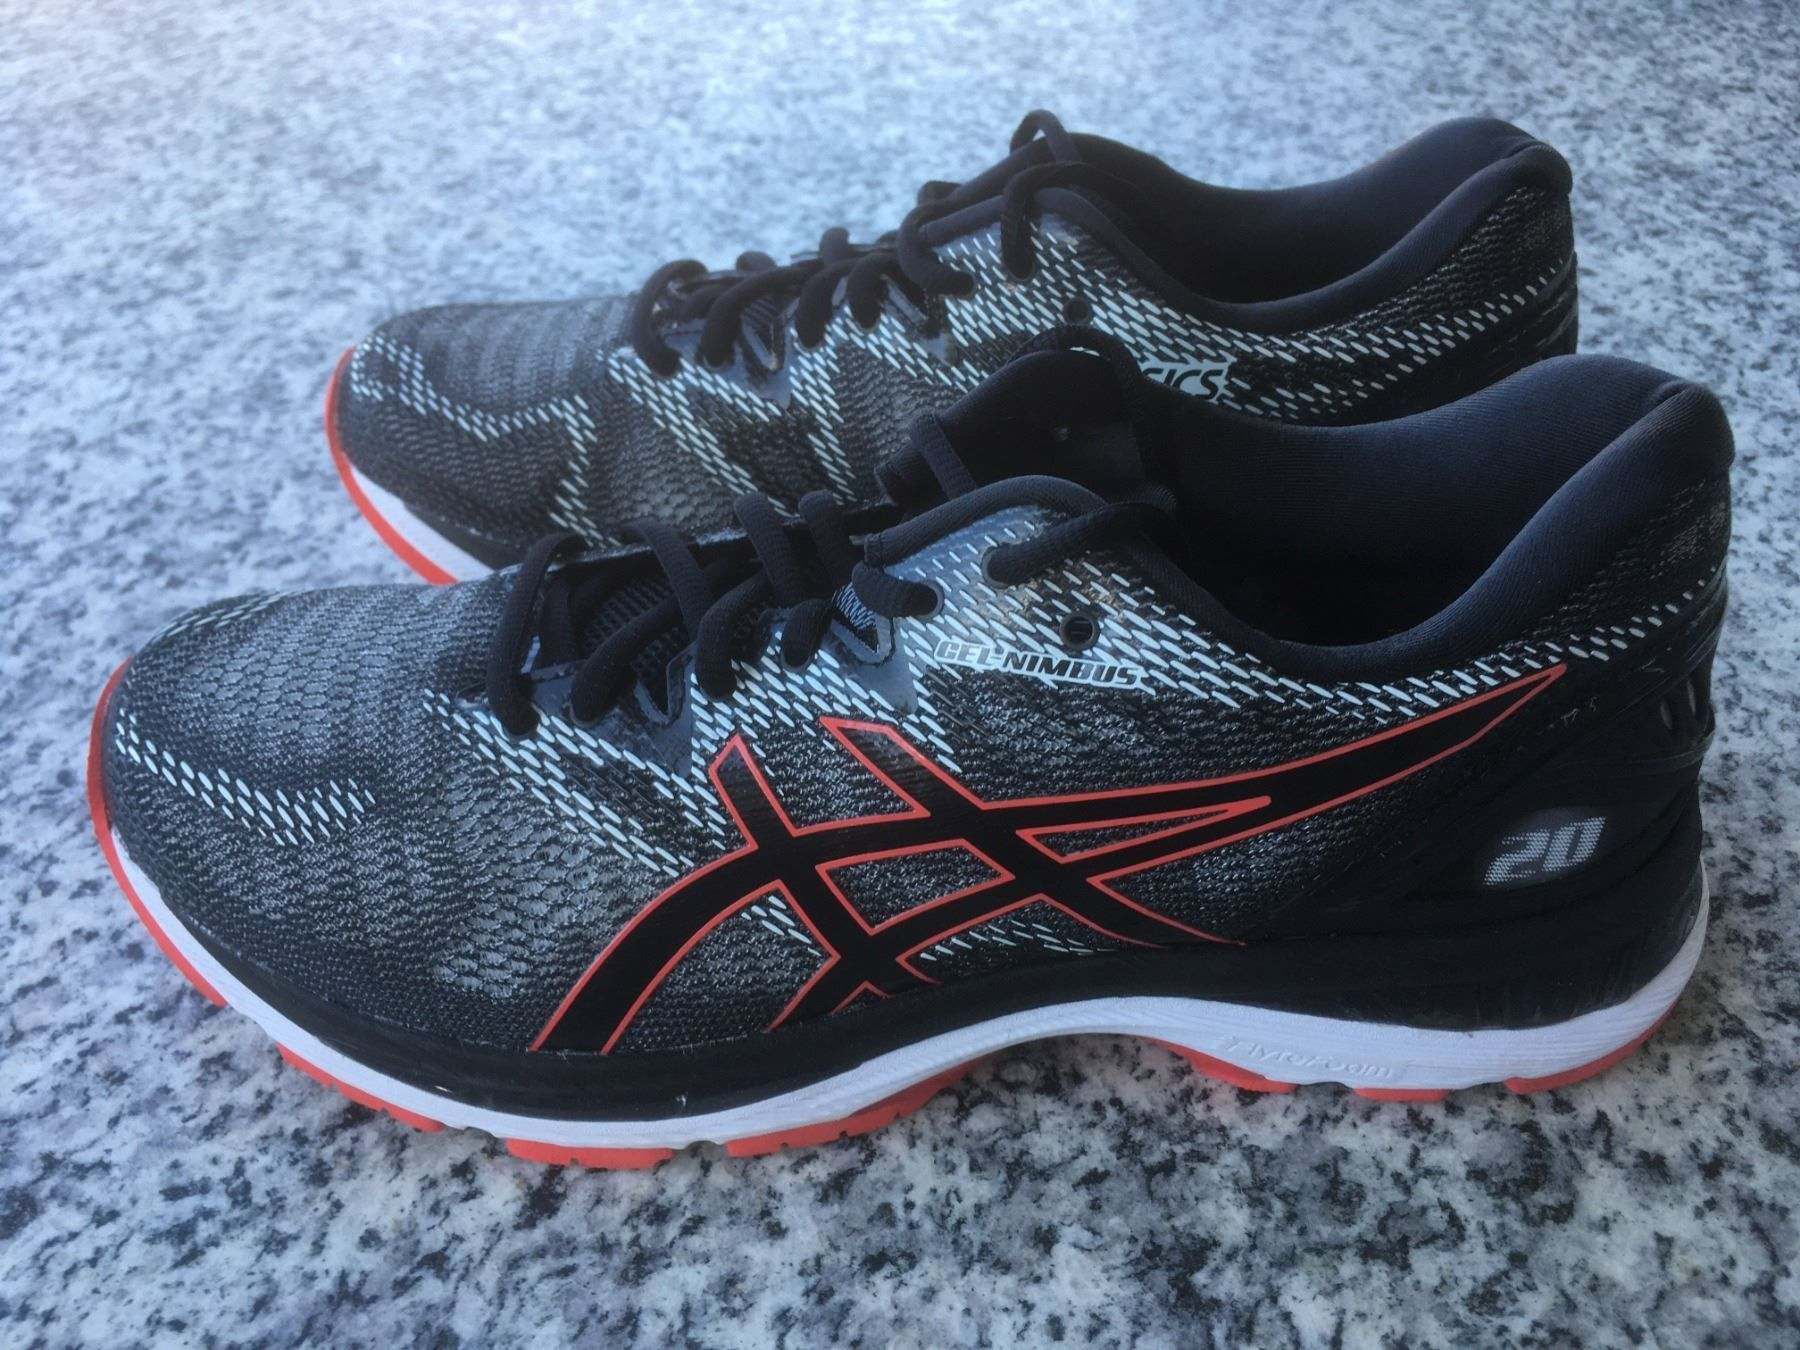 Asics Gel Nimbus 20 im Test joggies